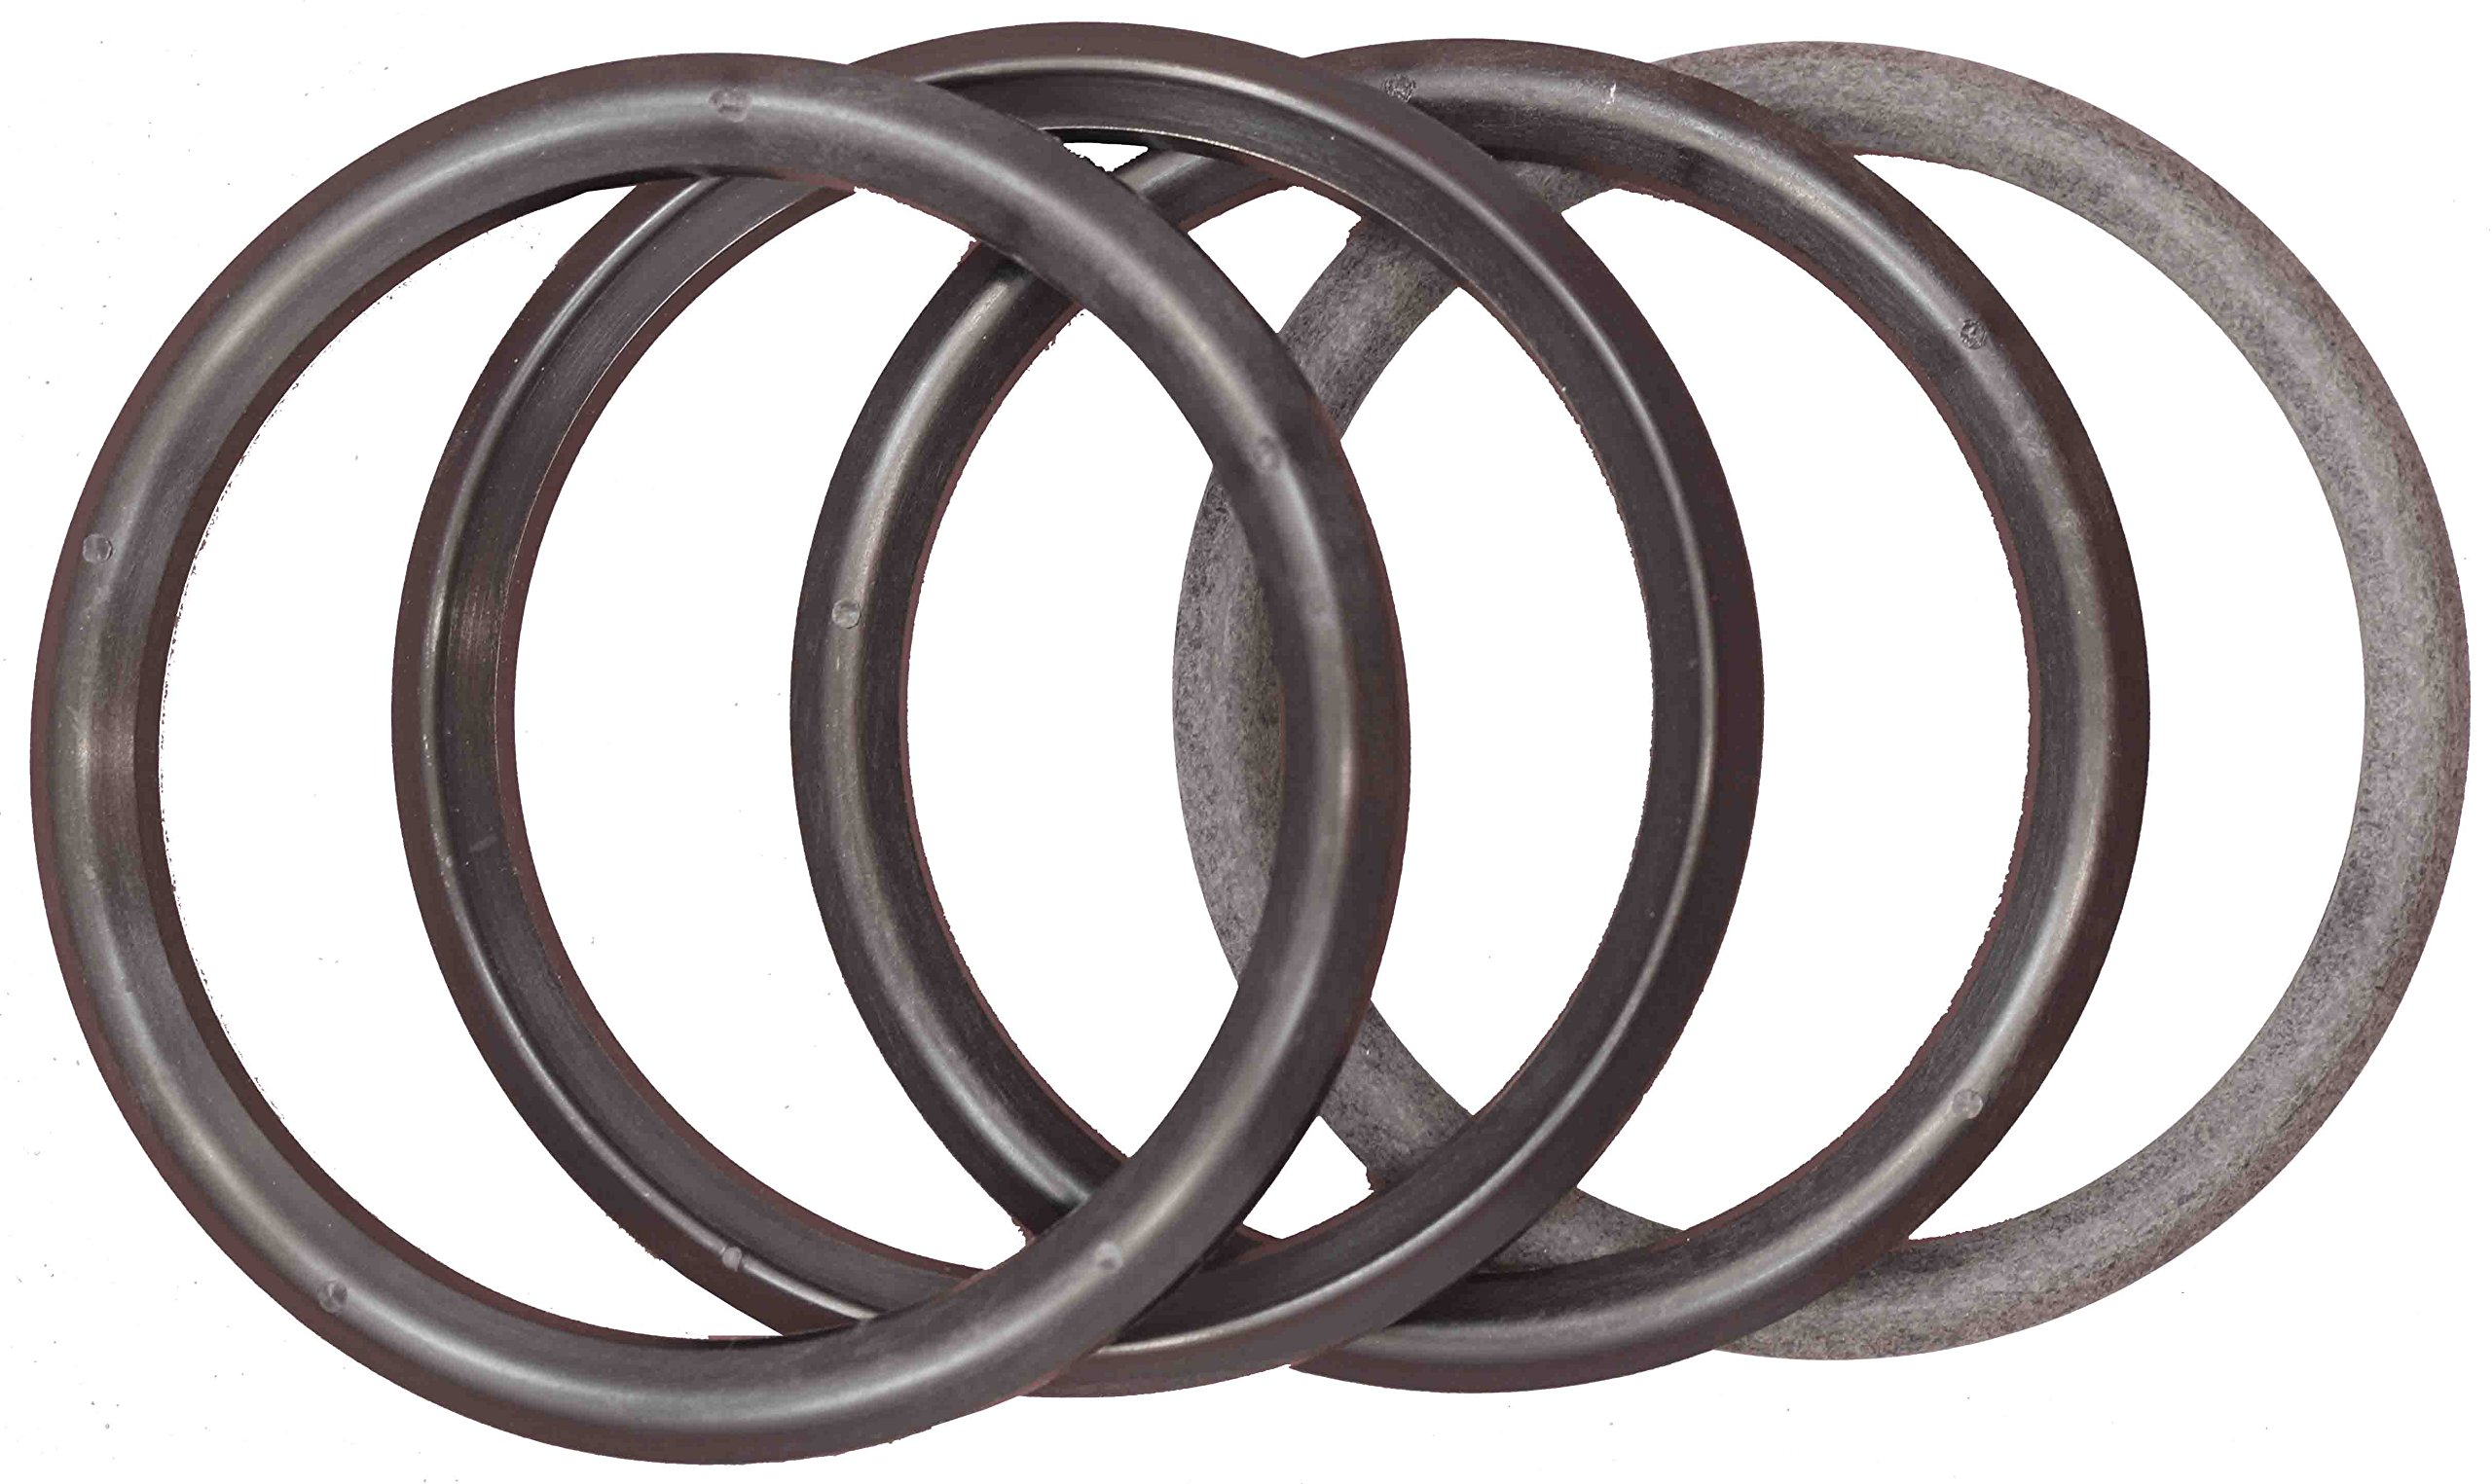 CASE D47205 HYDRAULIC CYLINDER SEAL KIT (PACKING ASSEMBLY)